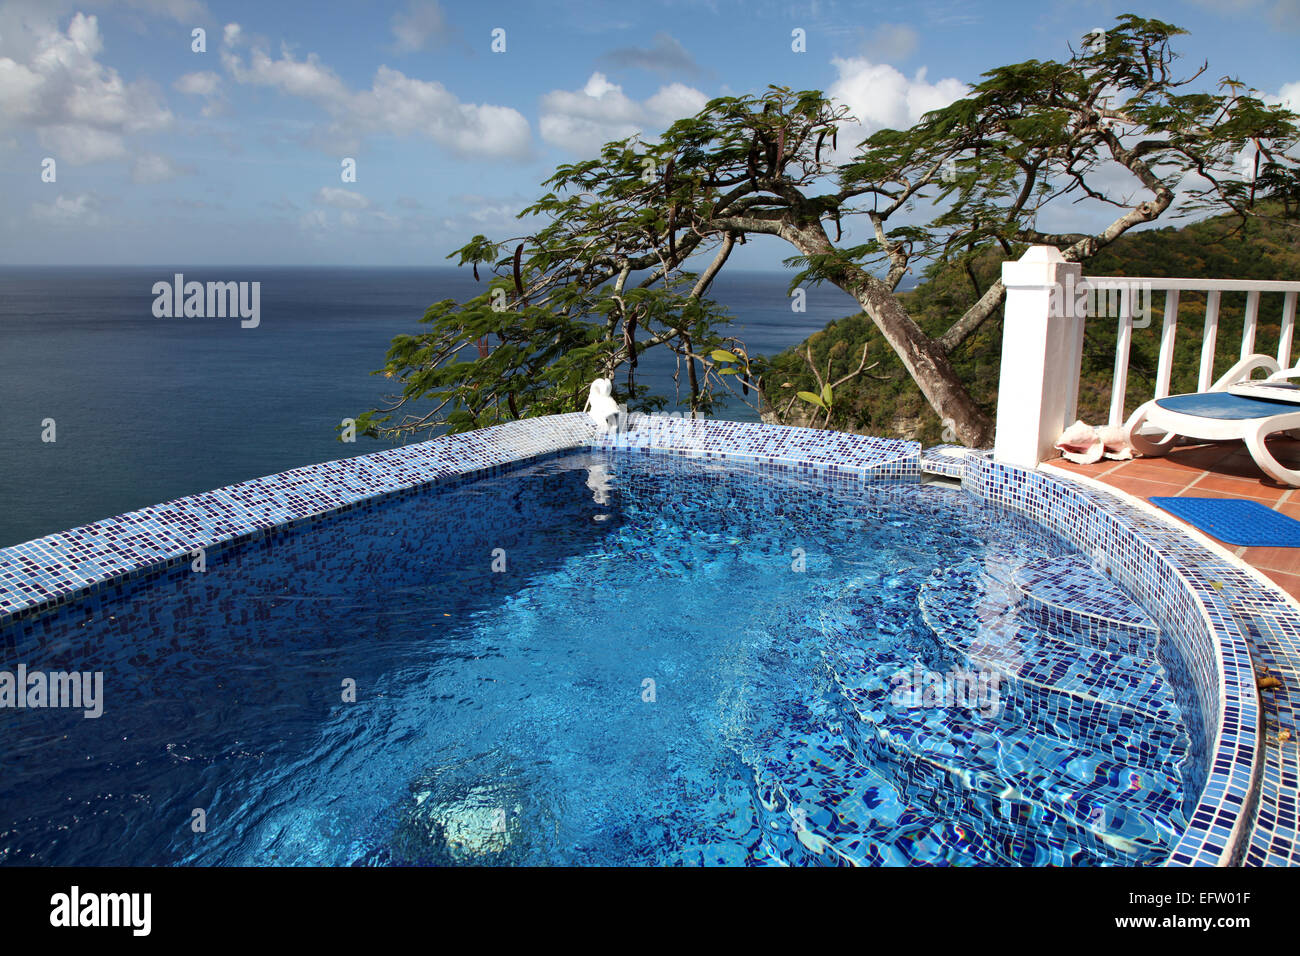 A blue plunge pool overlooks a Flamboyant Tree and the Caribbean Ocean - Stock Image